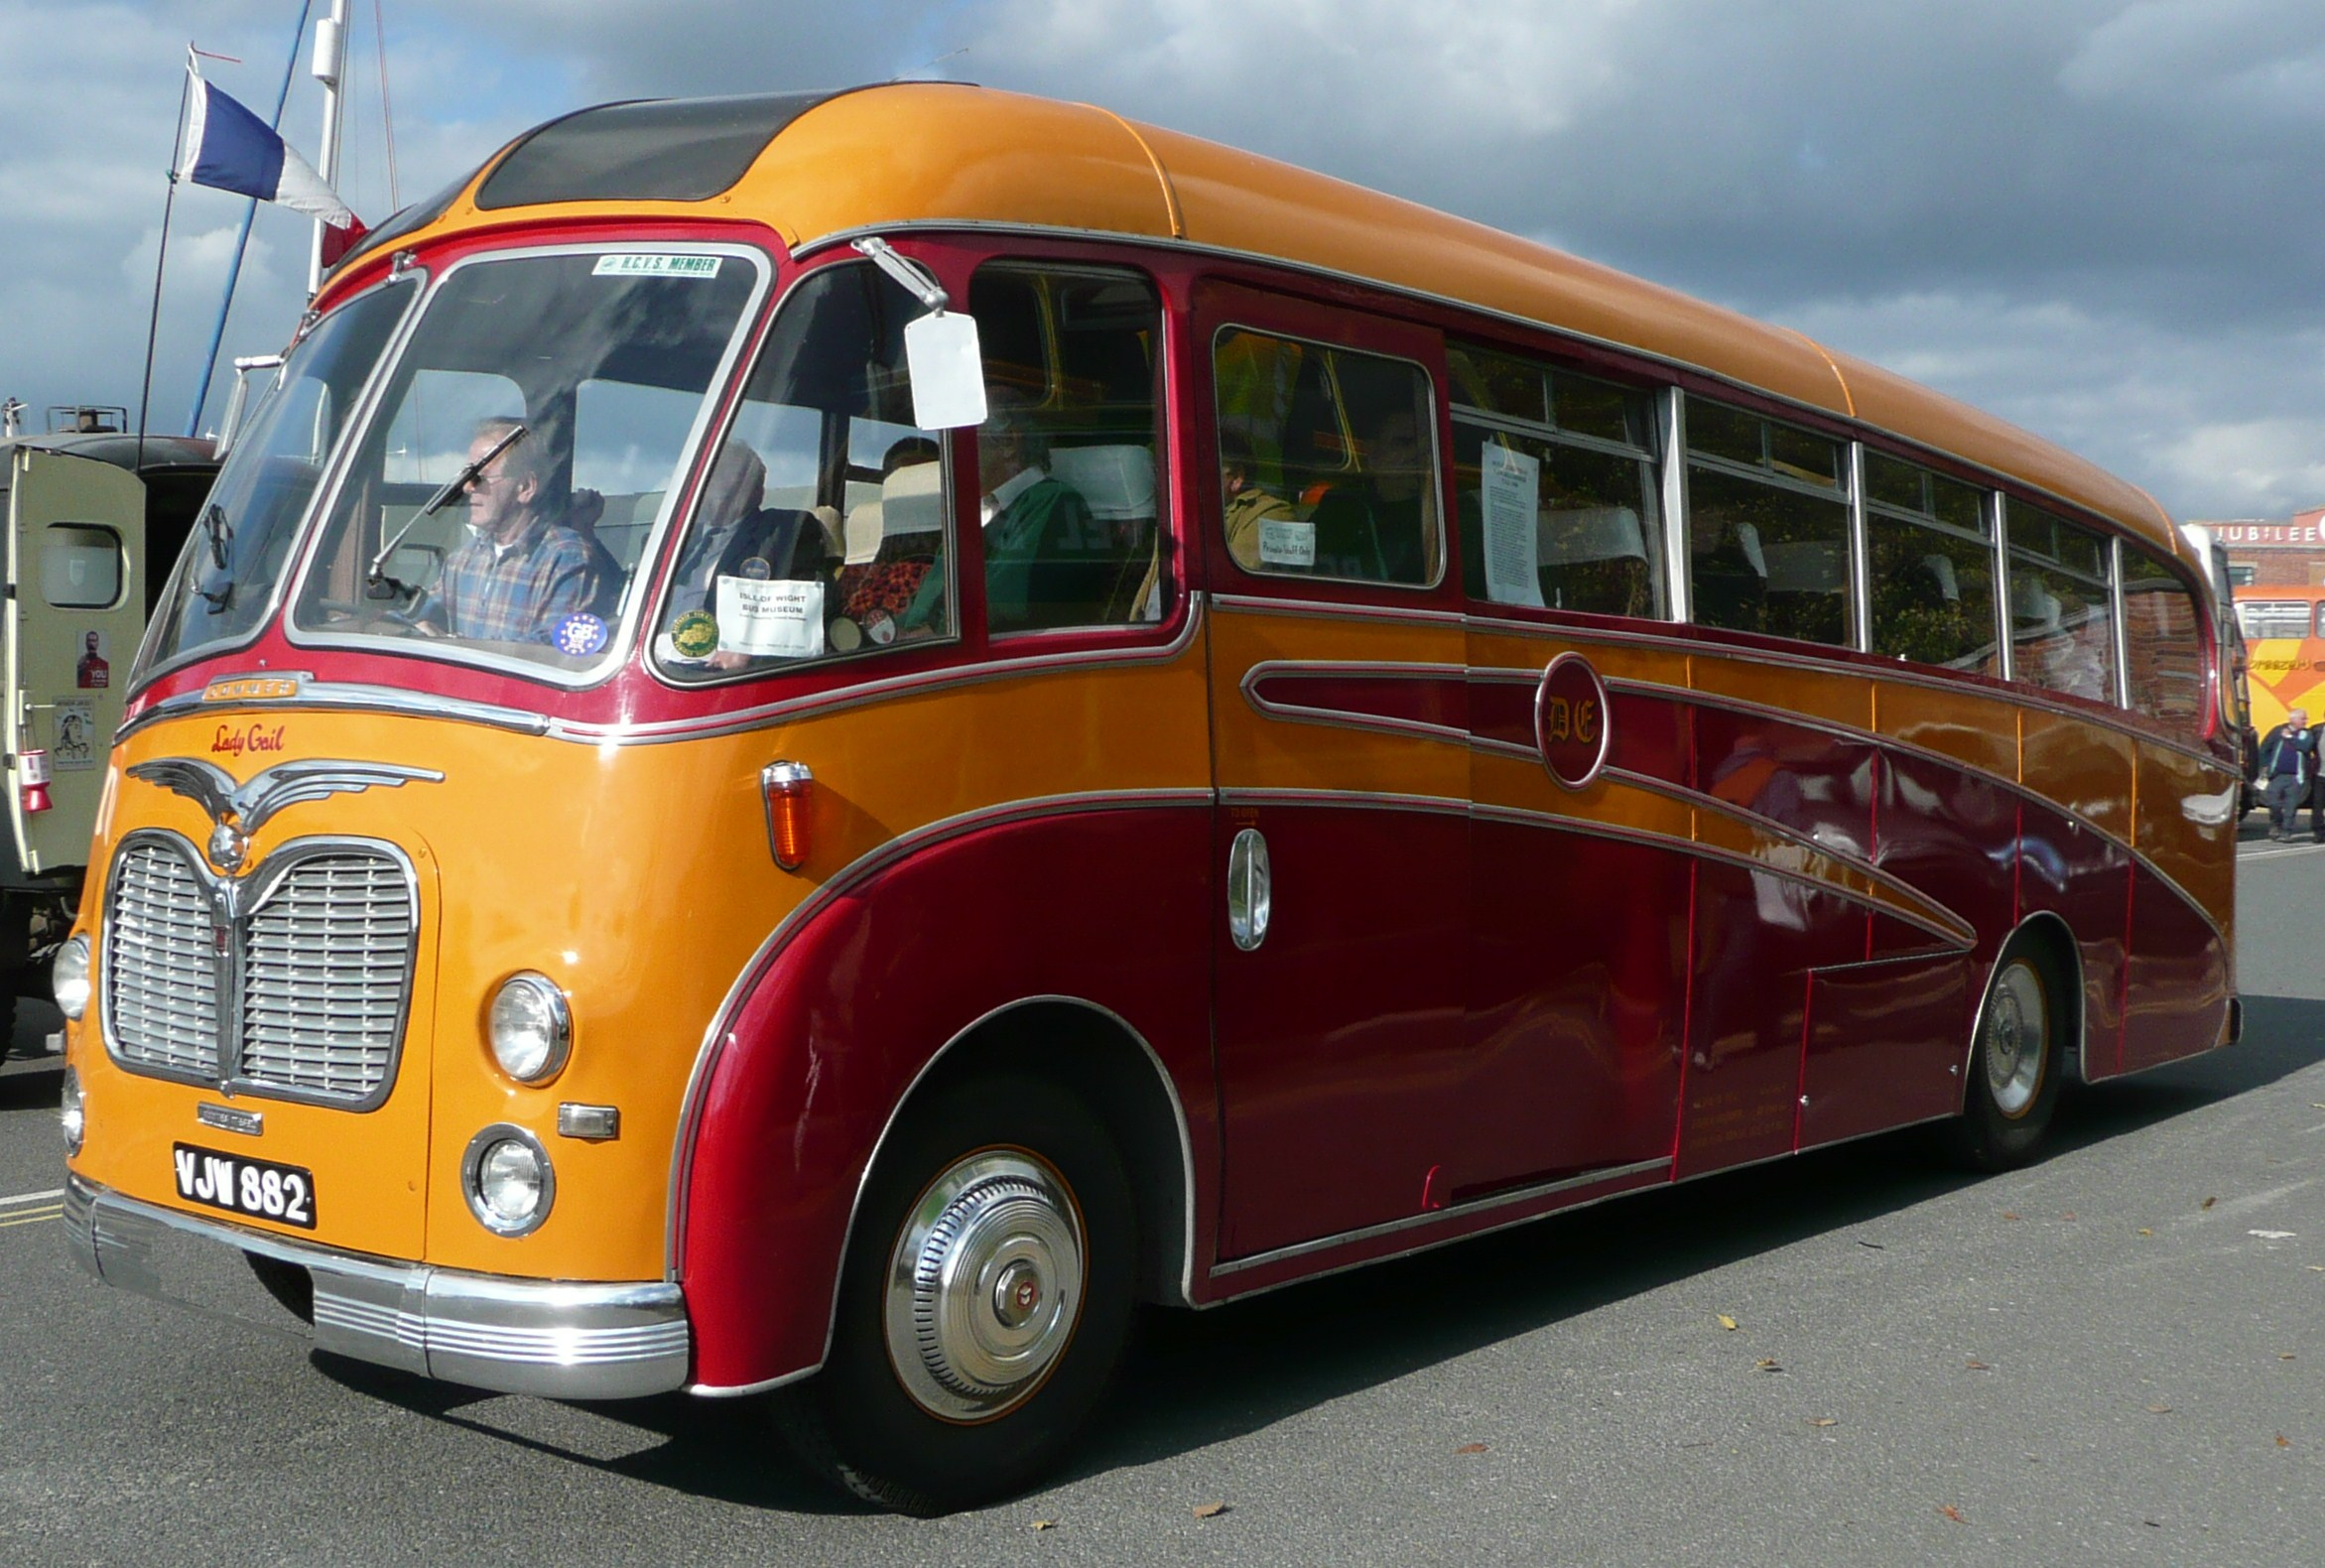 File:Don Everall Tours VJW 882.JPG